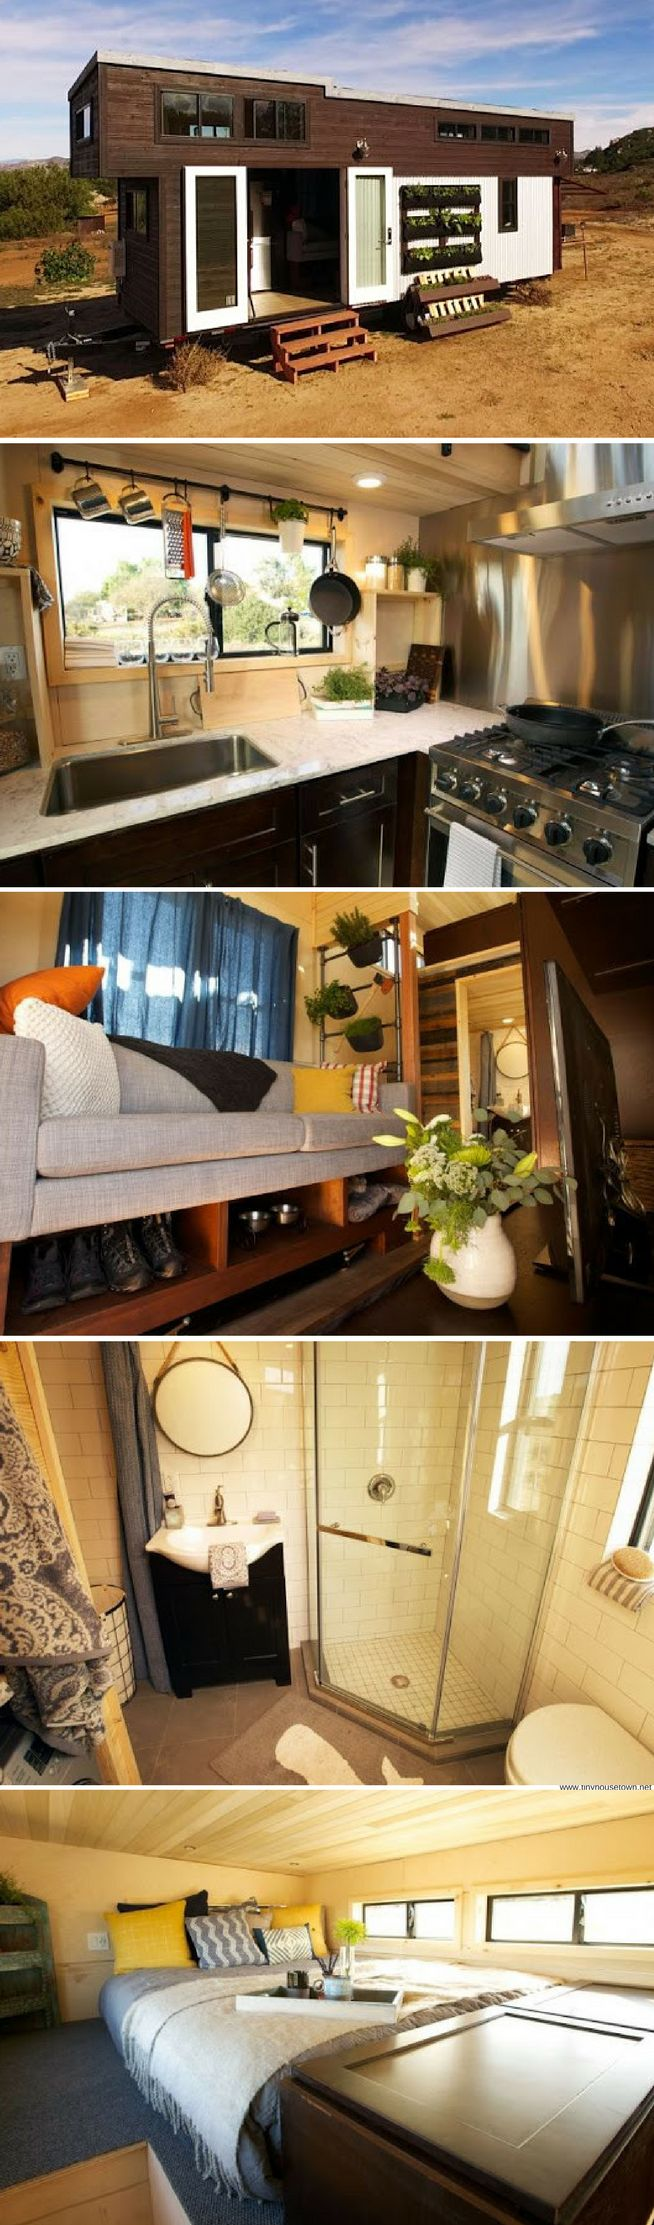 25 best ideas about house on wheels on pinterest - Small House On Wheels